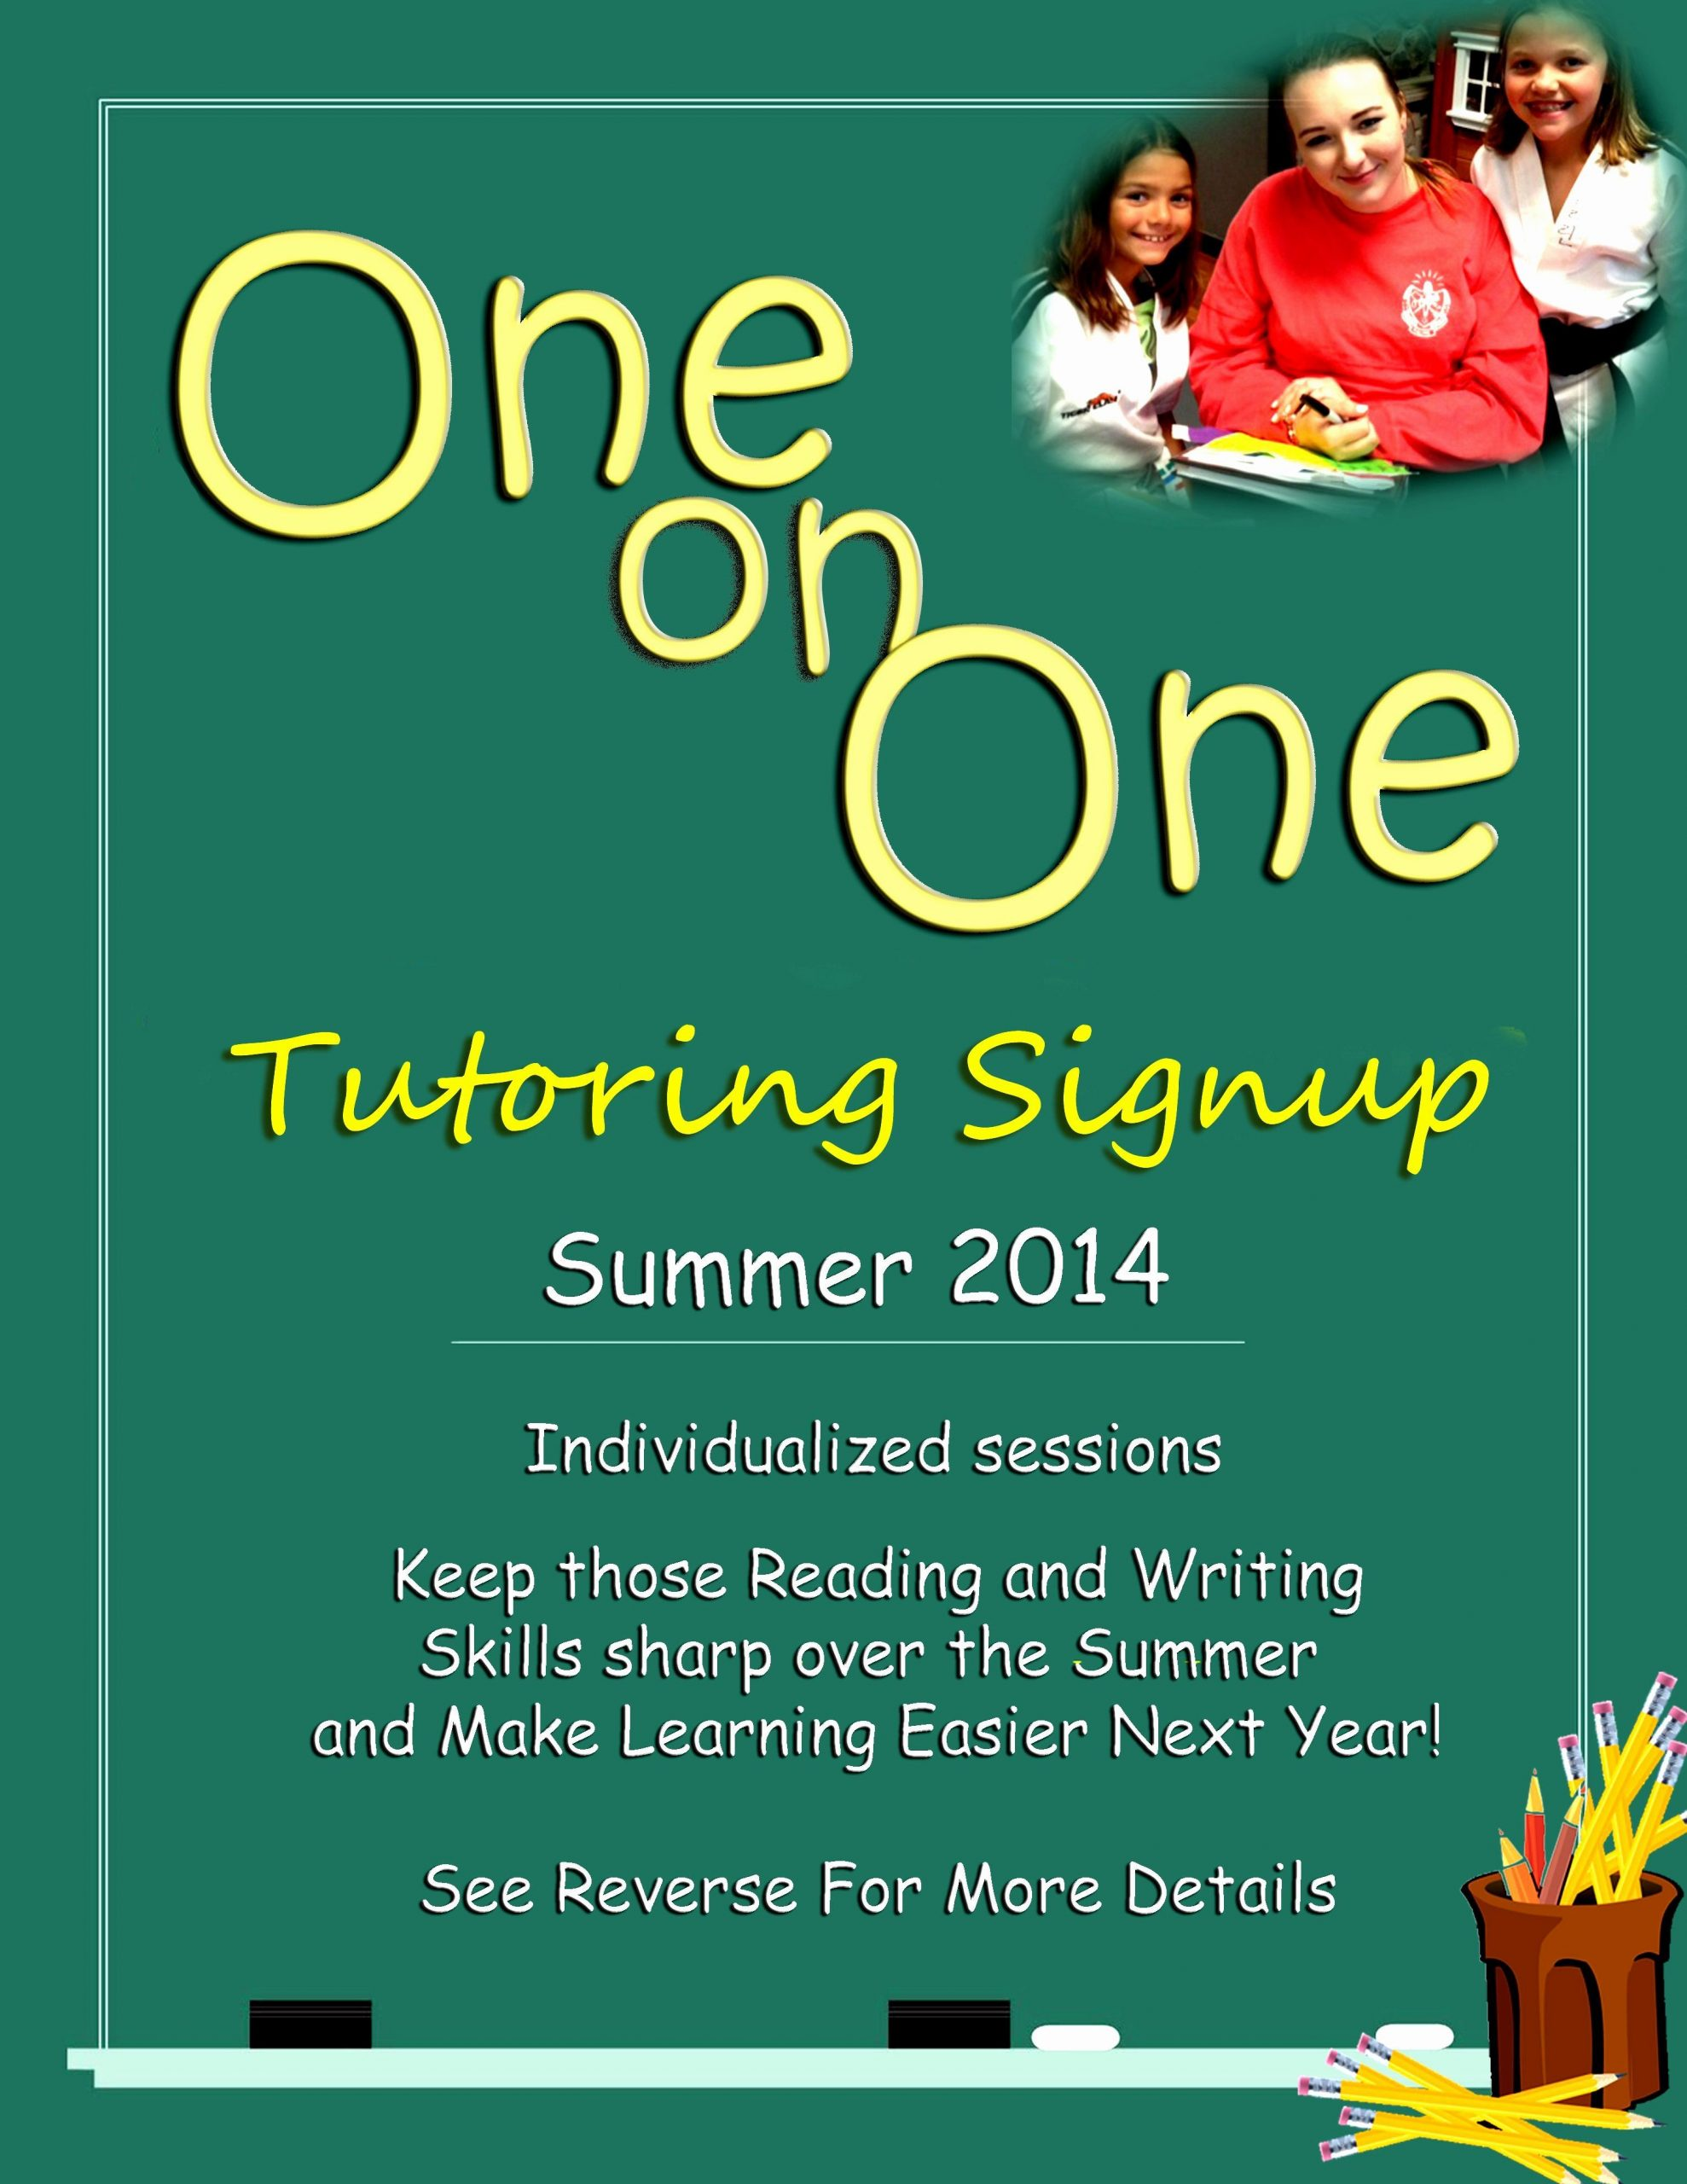 25 Tutoring Flyer Template Free in 2020 With images